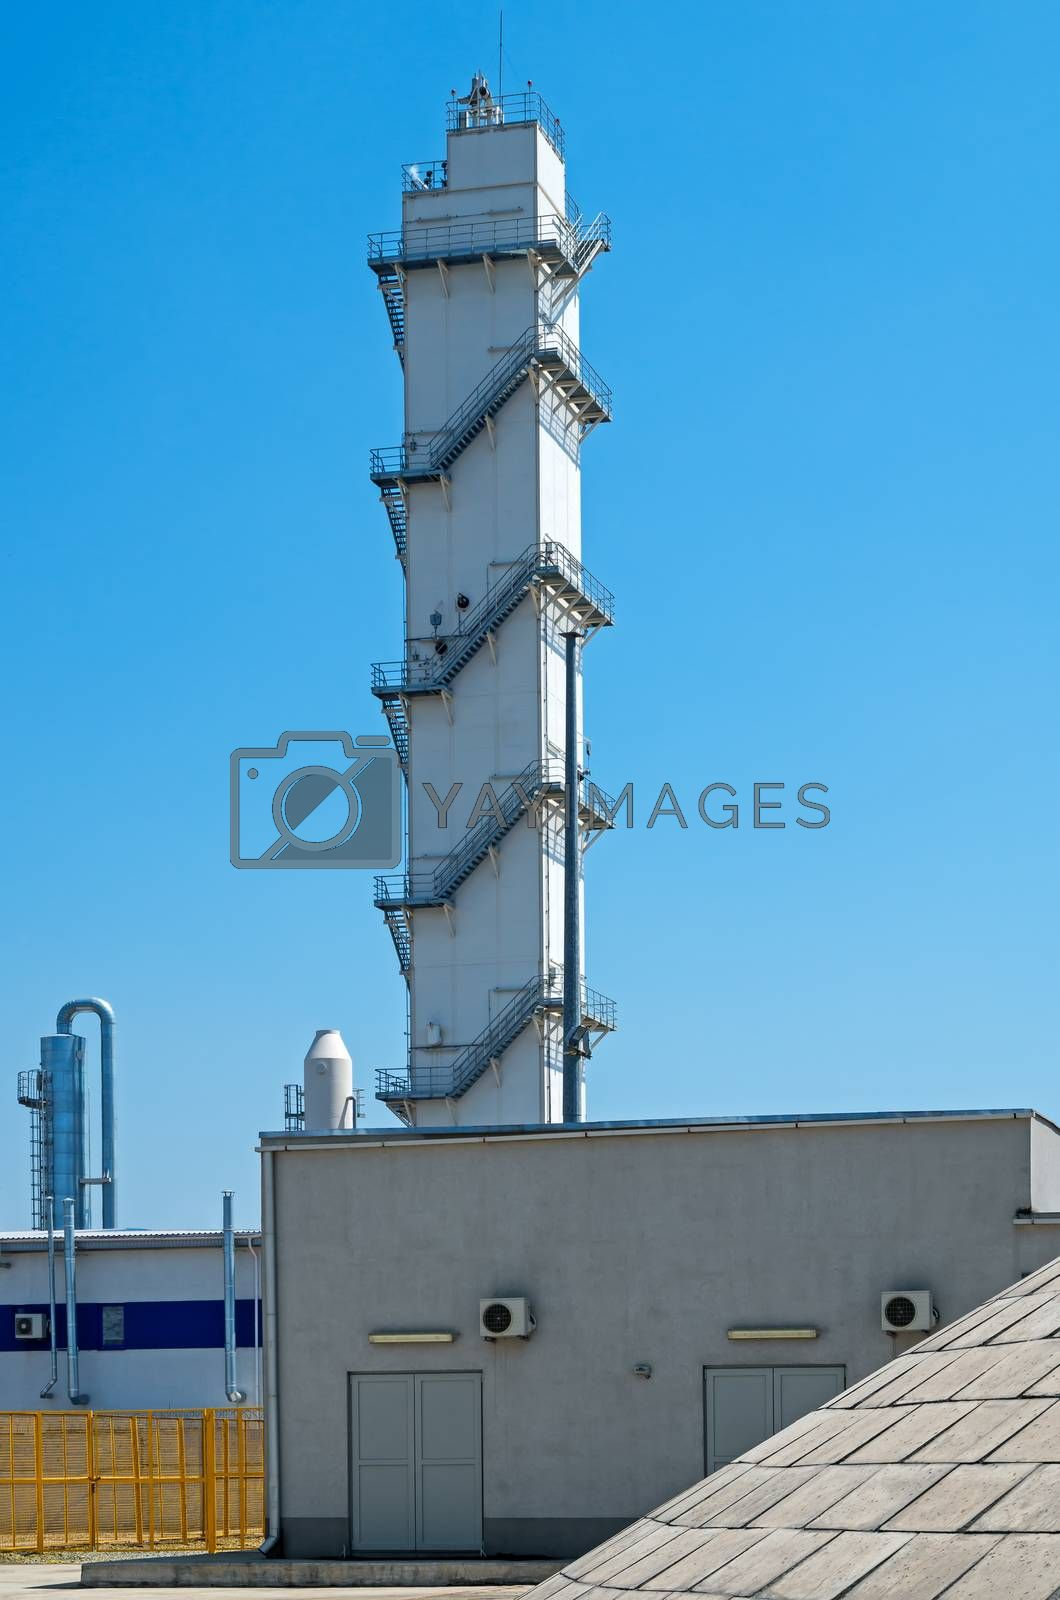 Manufacturing belfry electric steel plant on blue sky background.